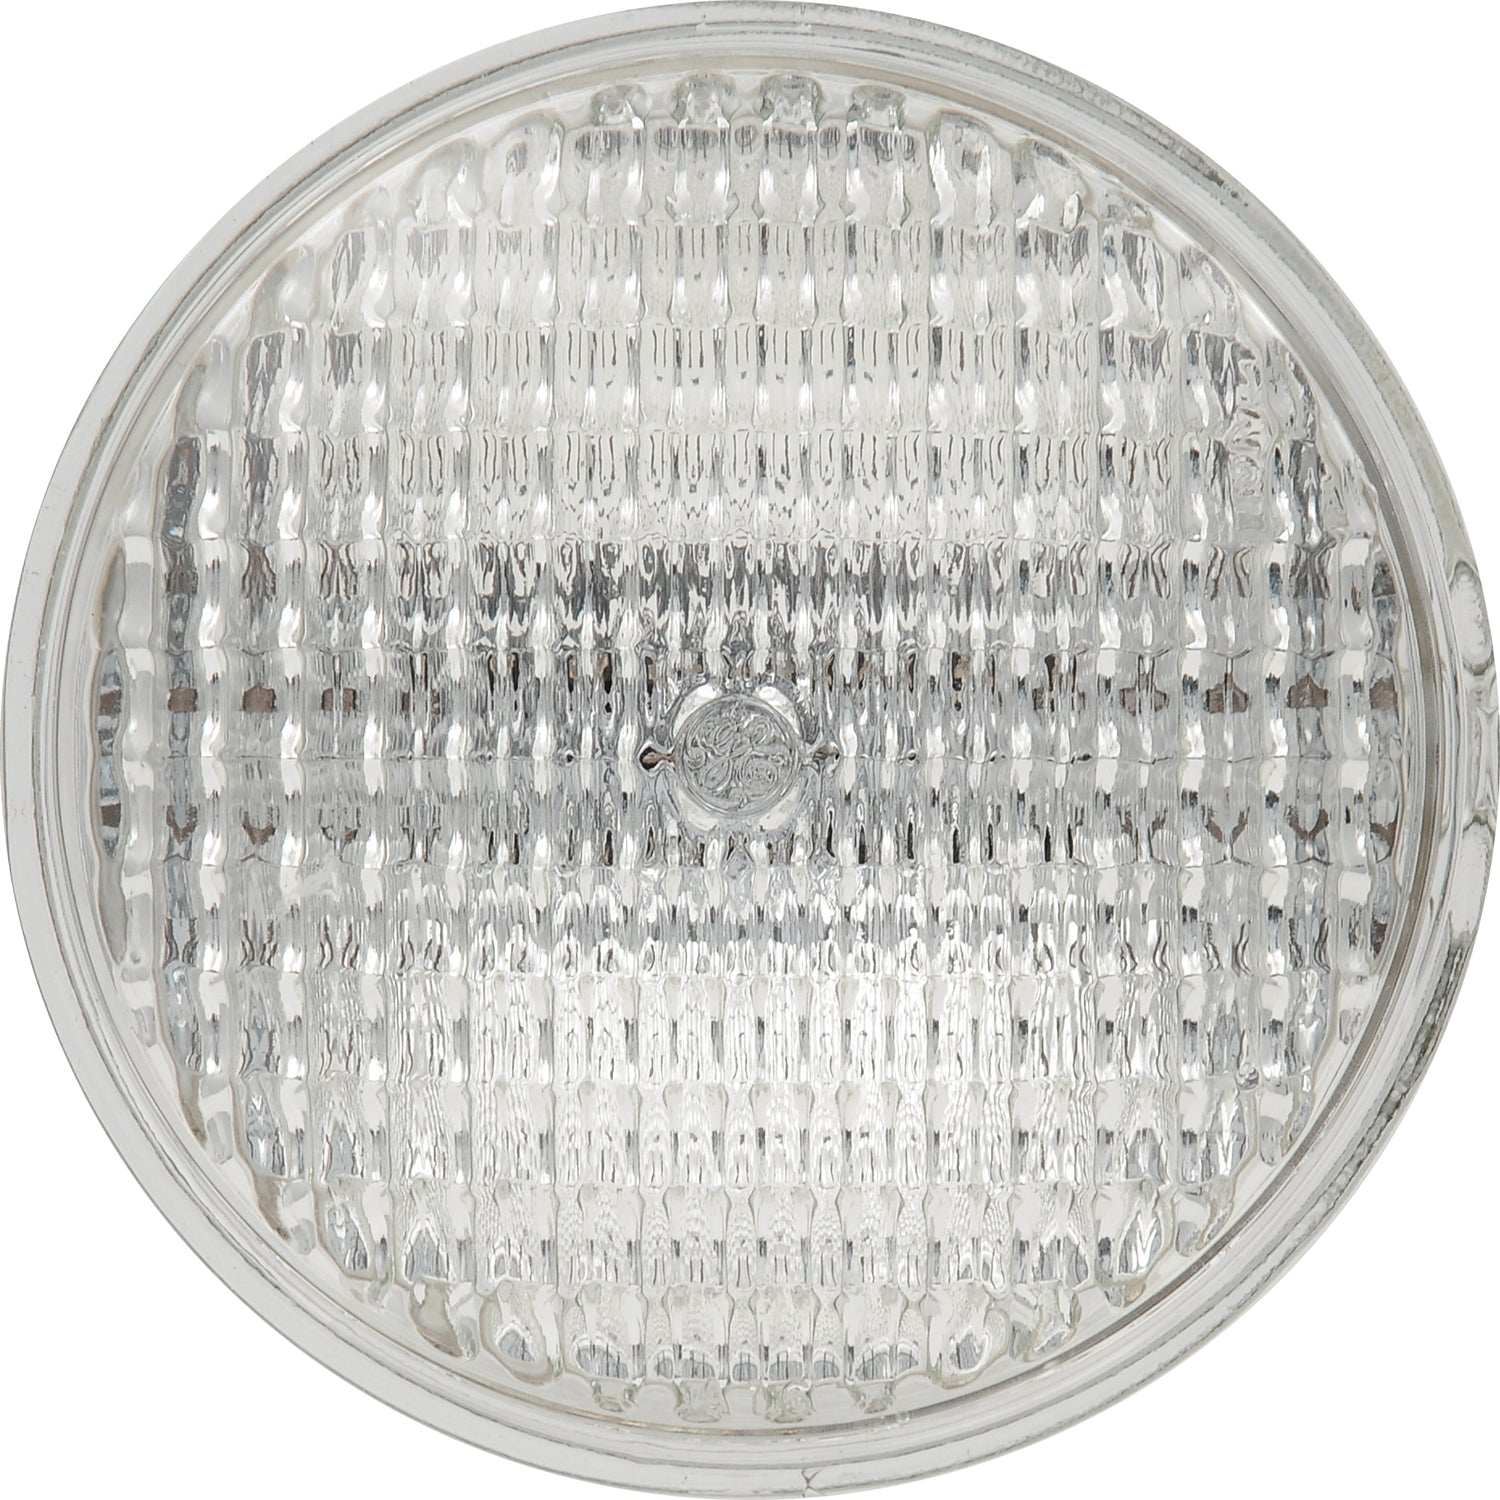 "SYLVANIA 4406 Sealed Beam Headlight (4.5"" Round) PAR36"